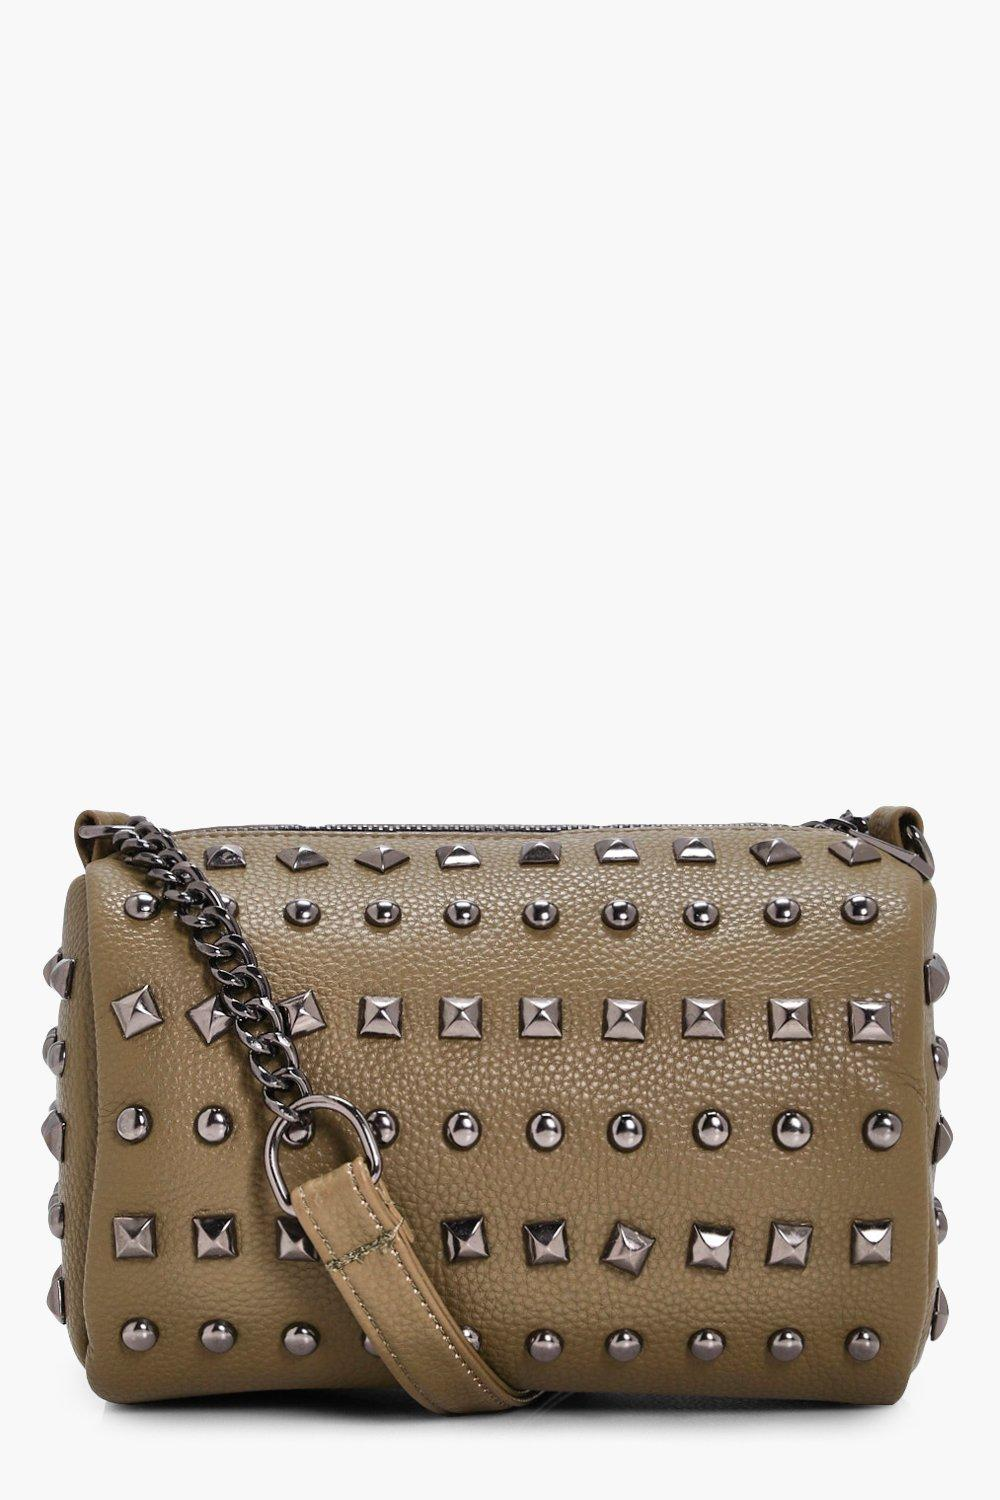 Multi Stud Cross Body - khaki - Josie Multi Stud C